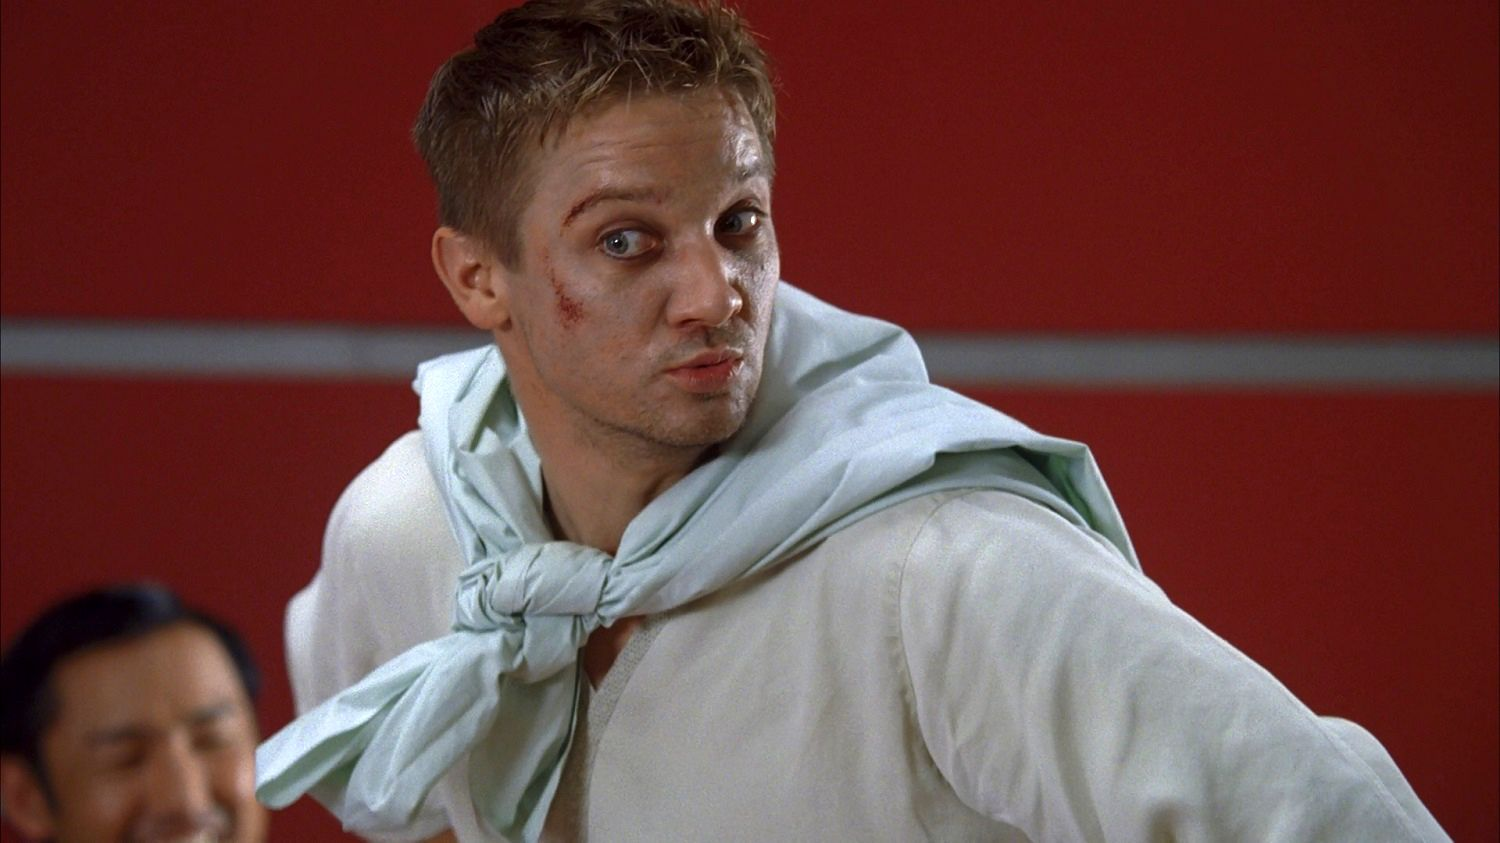 Jeremy Renner as Jimmy...